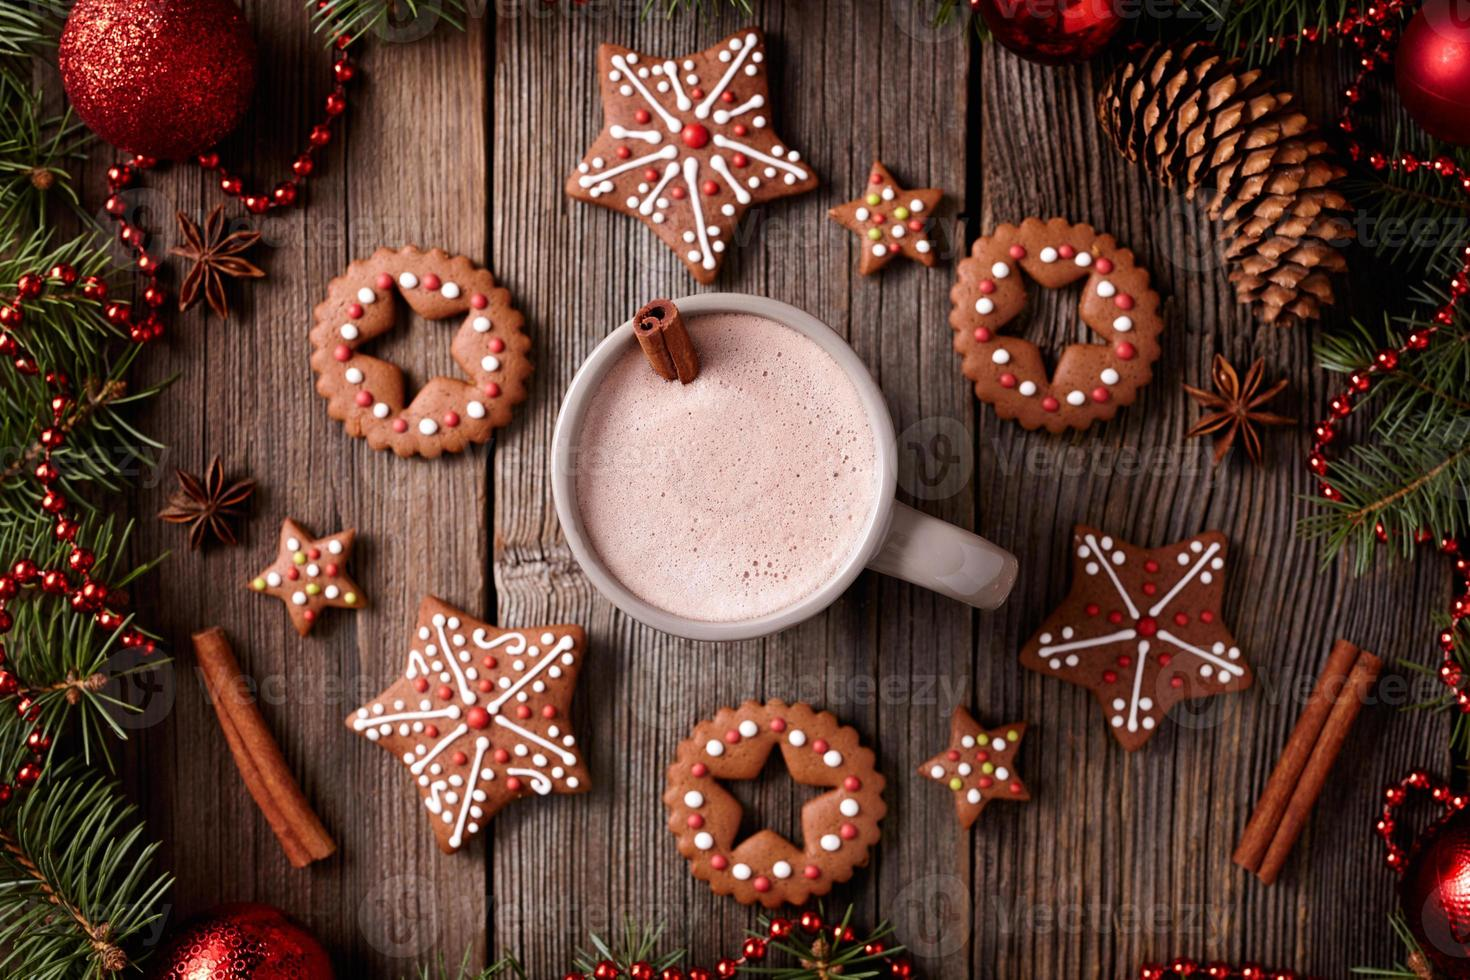 Cup of hot chocolate or cocoa with stars and round photo